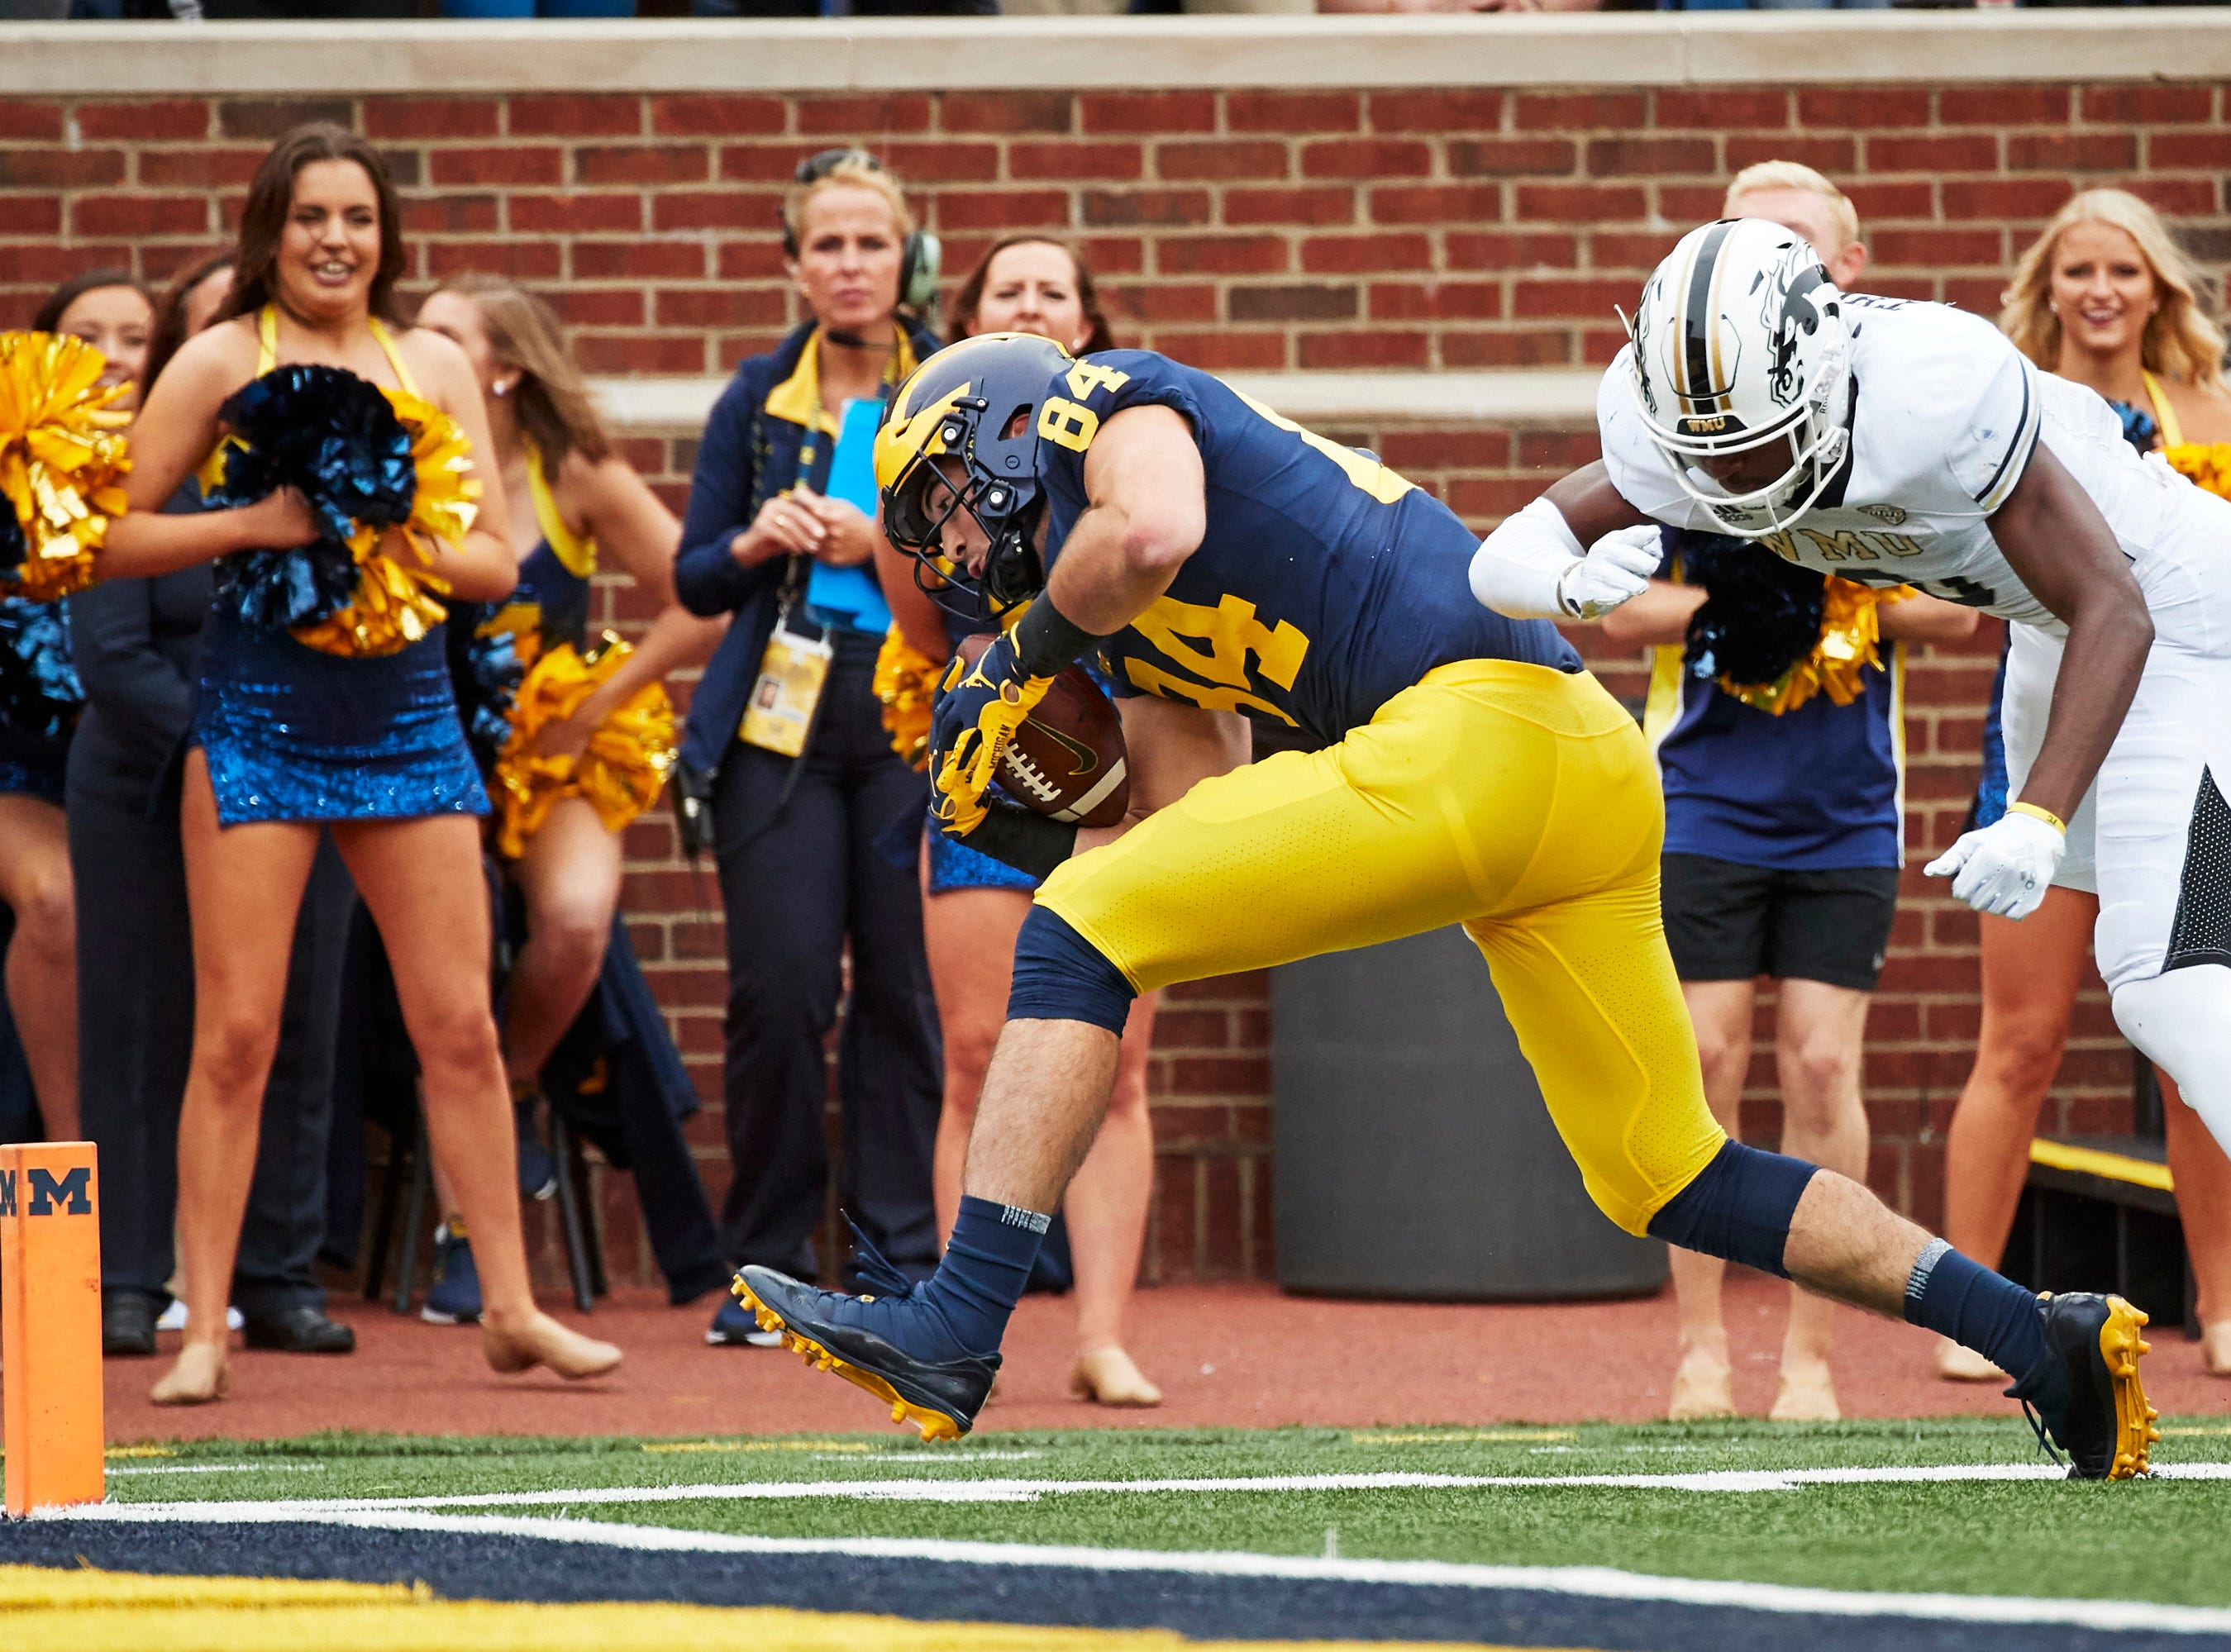 Sep 8, 2018; Ann Arbor, MI, USA; Michigan Wolverines tight end Sean McKeon (84) runs the ball for a touchdown against the  Western Michigan Broncos in the first half at Michigan Stadium. Mandatory Credit: Rick Osentoski-USA TODAY Sports